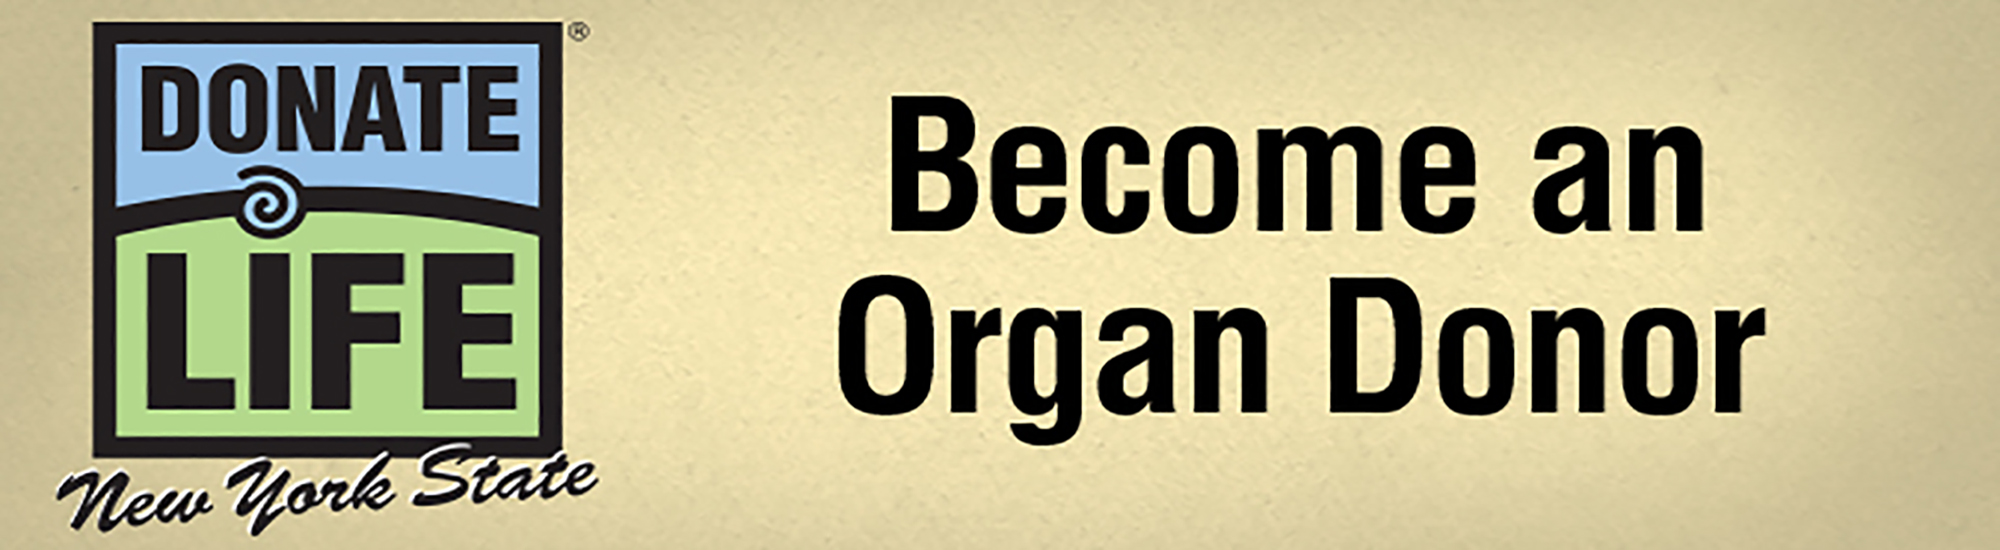 Become an Organ Donor